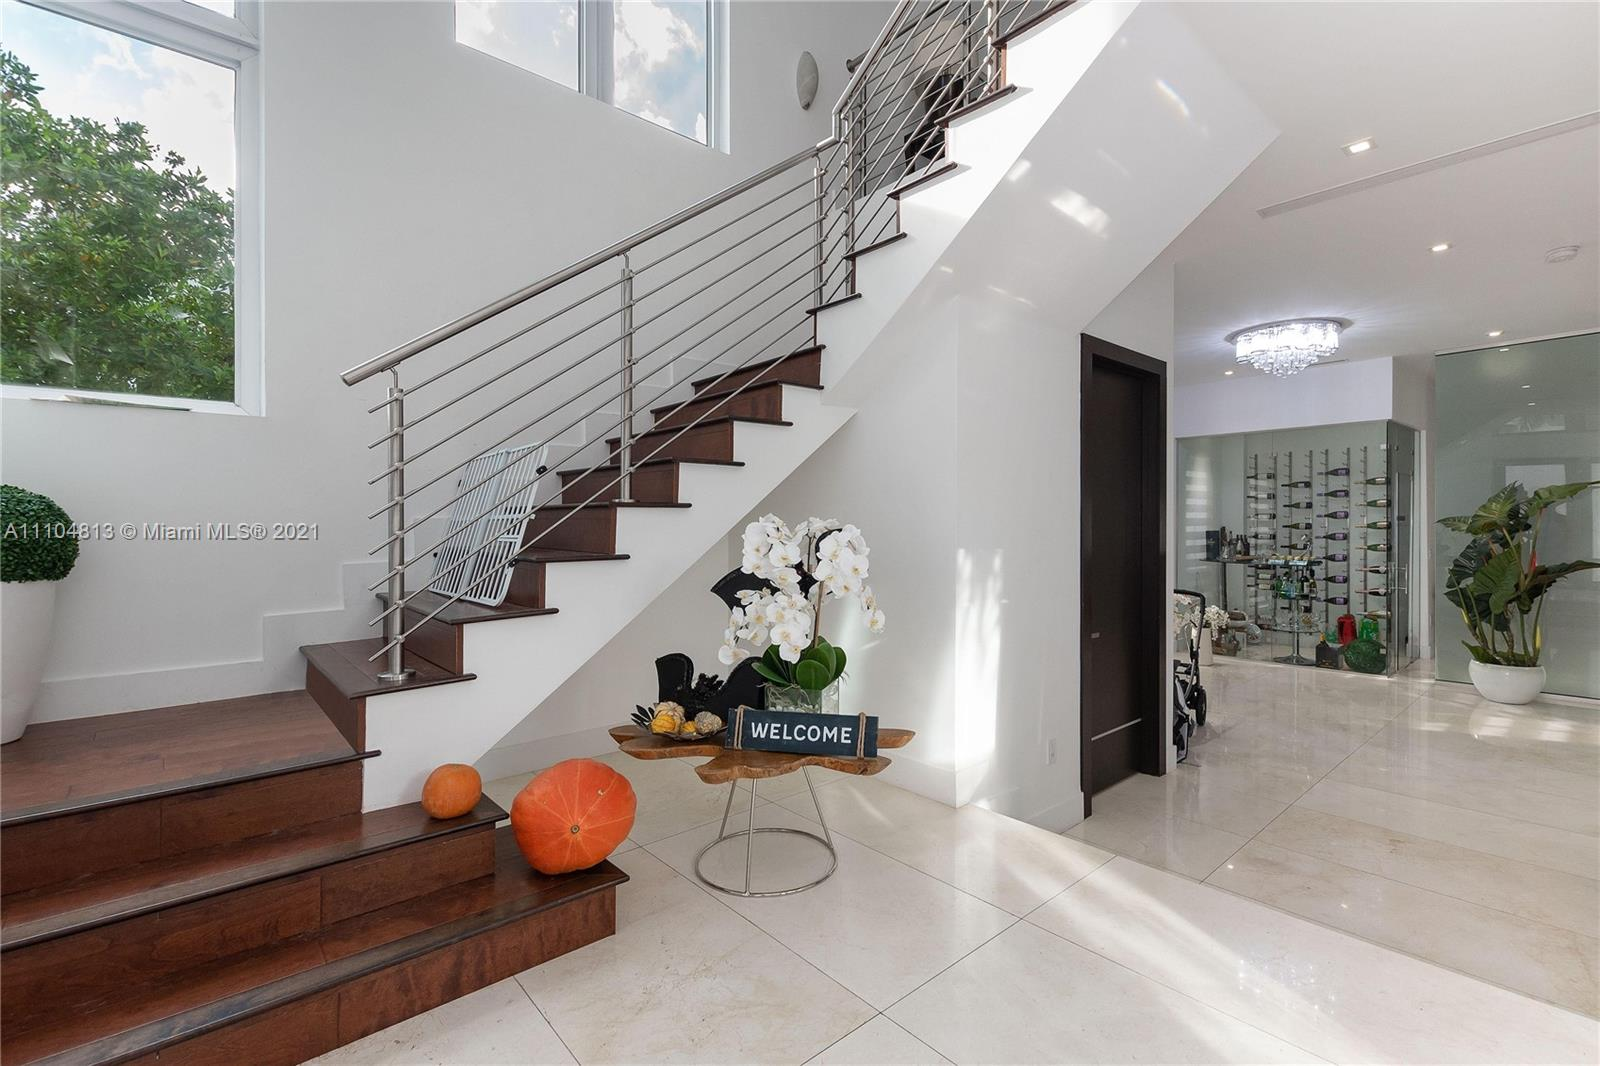 Single Family Home,For Sale,8293 NW 33rd Ter, Doral, Florida 33122,Brickell,realty,broker,condos near me